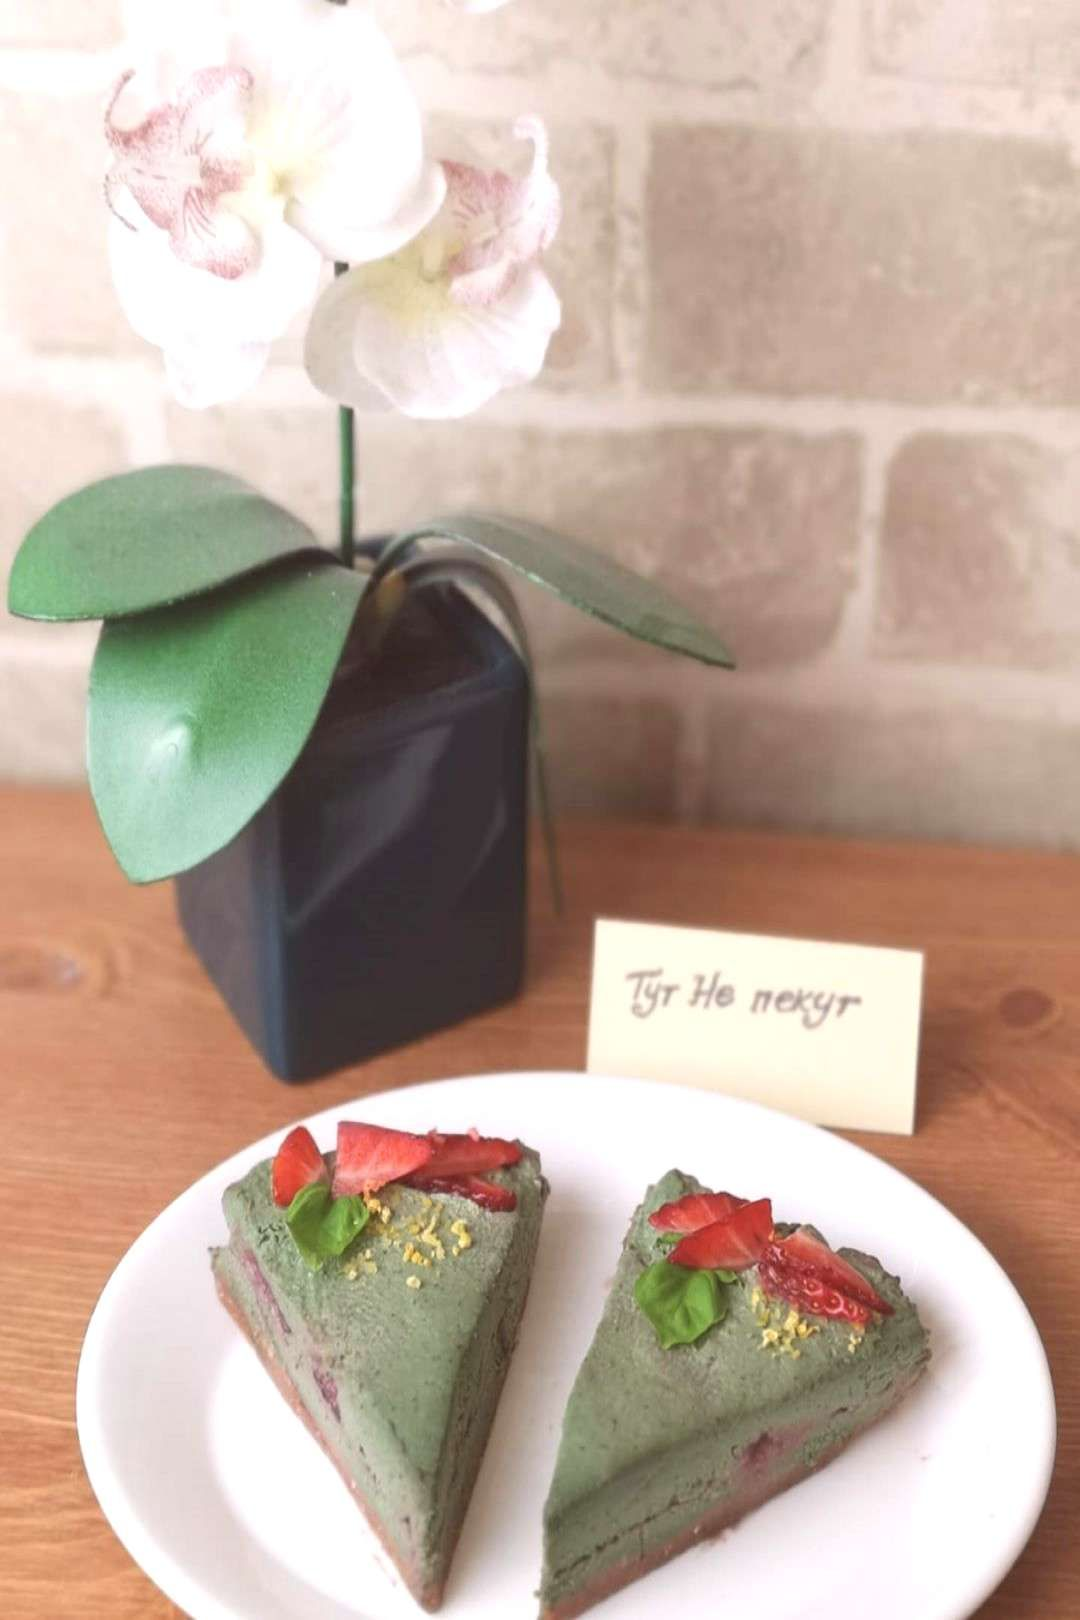 #rawdesserts #idealbakery #flower #march #2020 #food #and #on #18 iDealBakery on March 18 2020 flower and foodYou can find Raw desserts and more on our website.iDealBakery on March 18 2020 flower and food